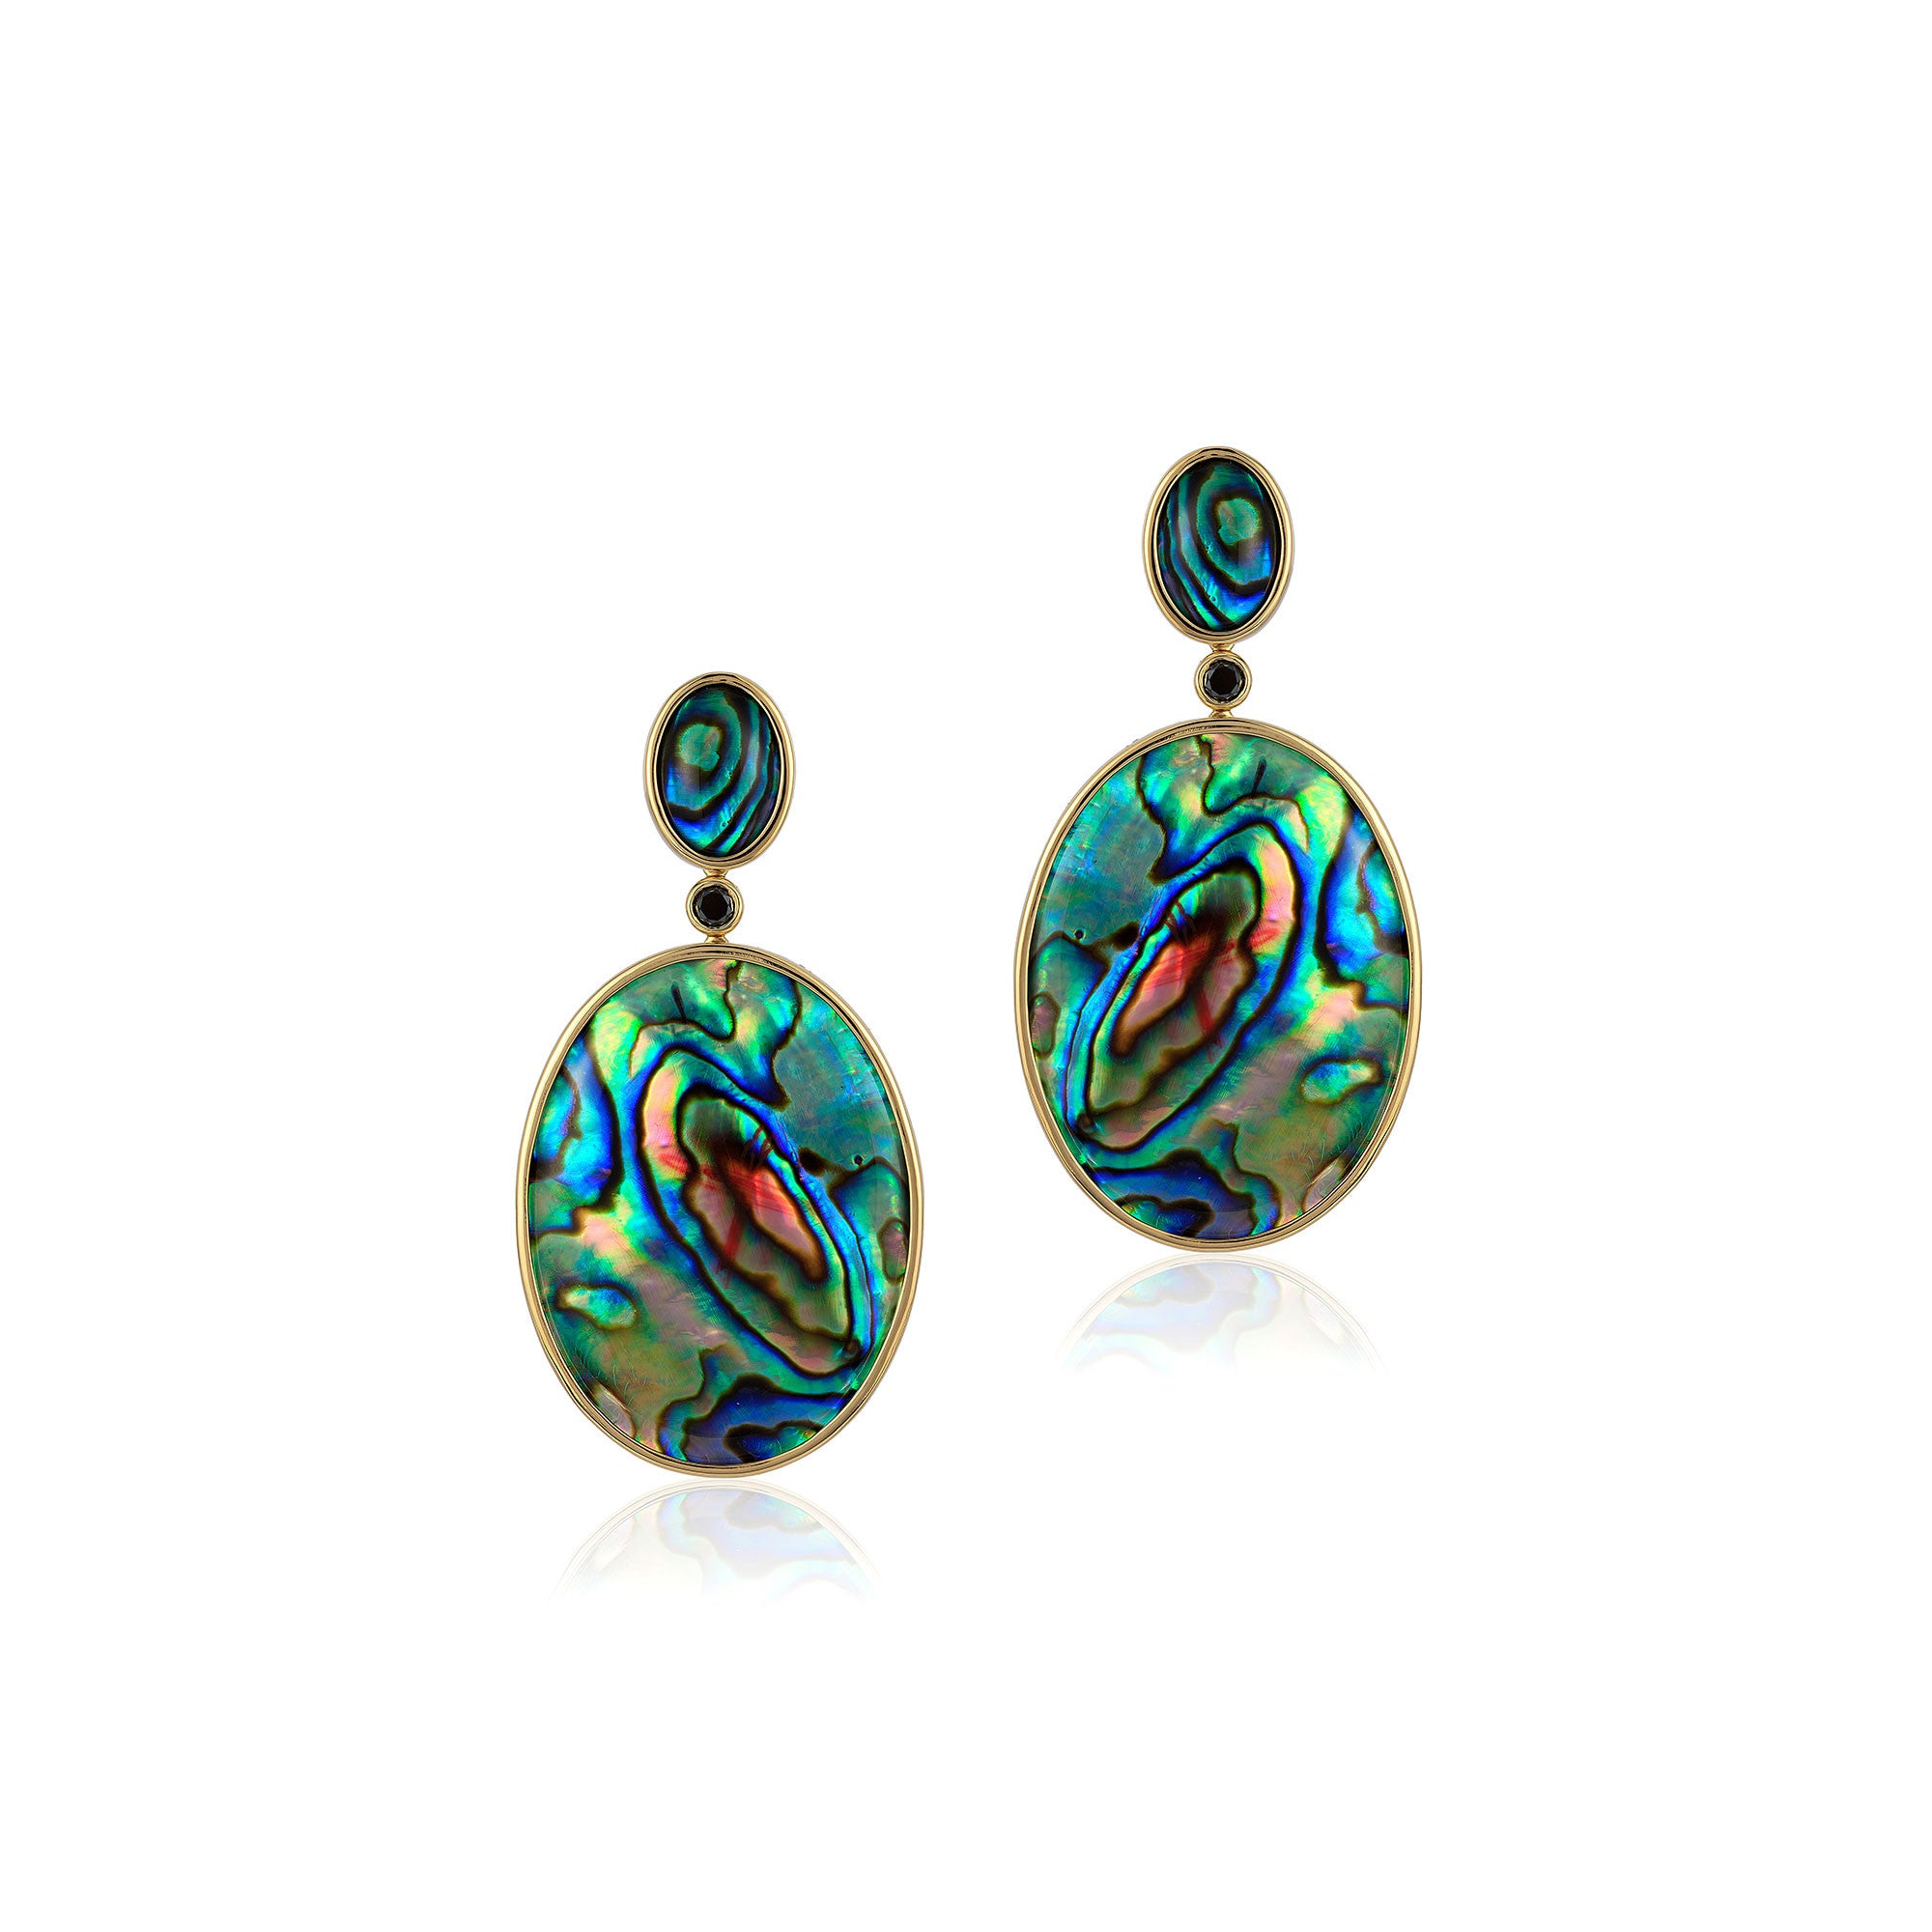 Oval Mother of Pearl Abalone Earrings